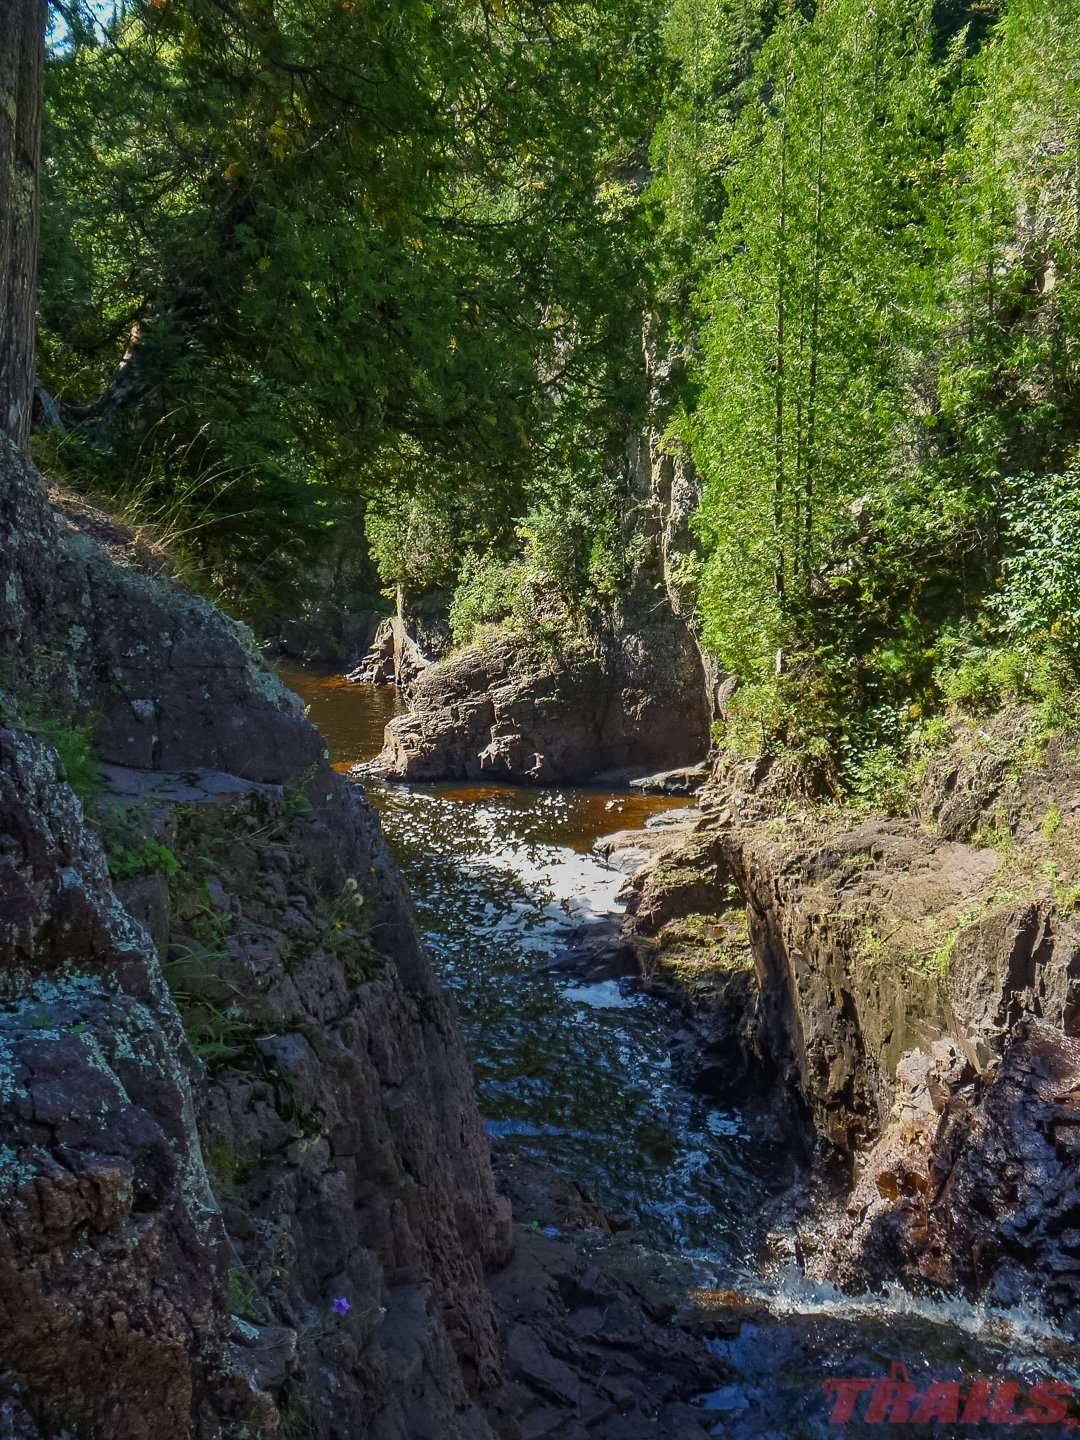 The Brule River has carved a massive gorge into the volcanic rock over time at Judge C.R. Magney State Park